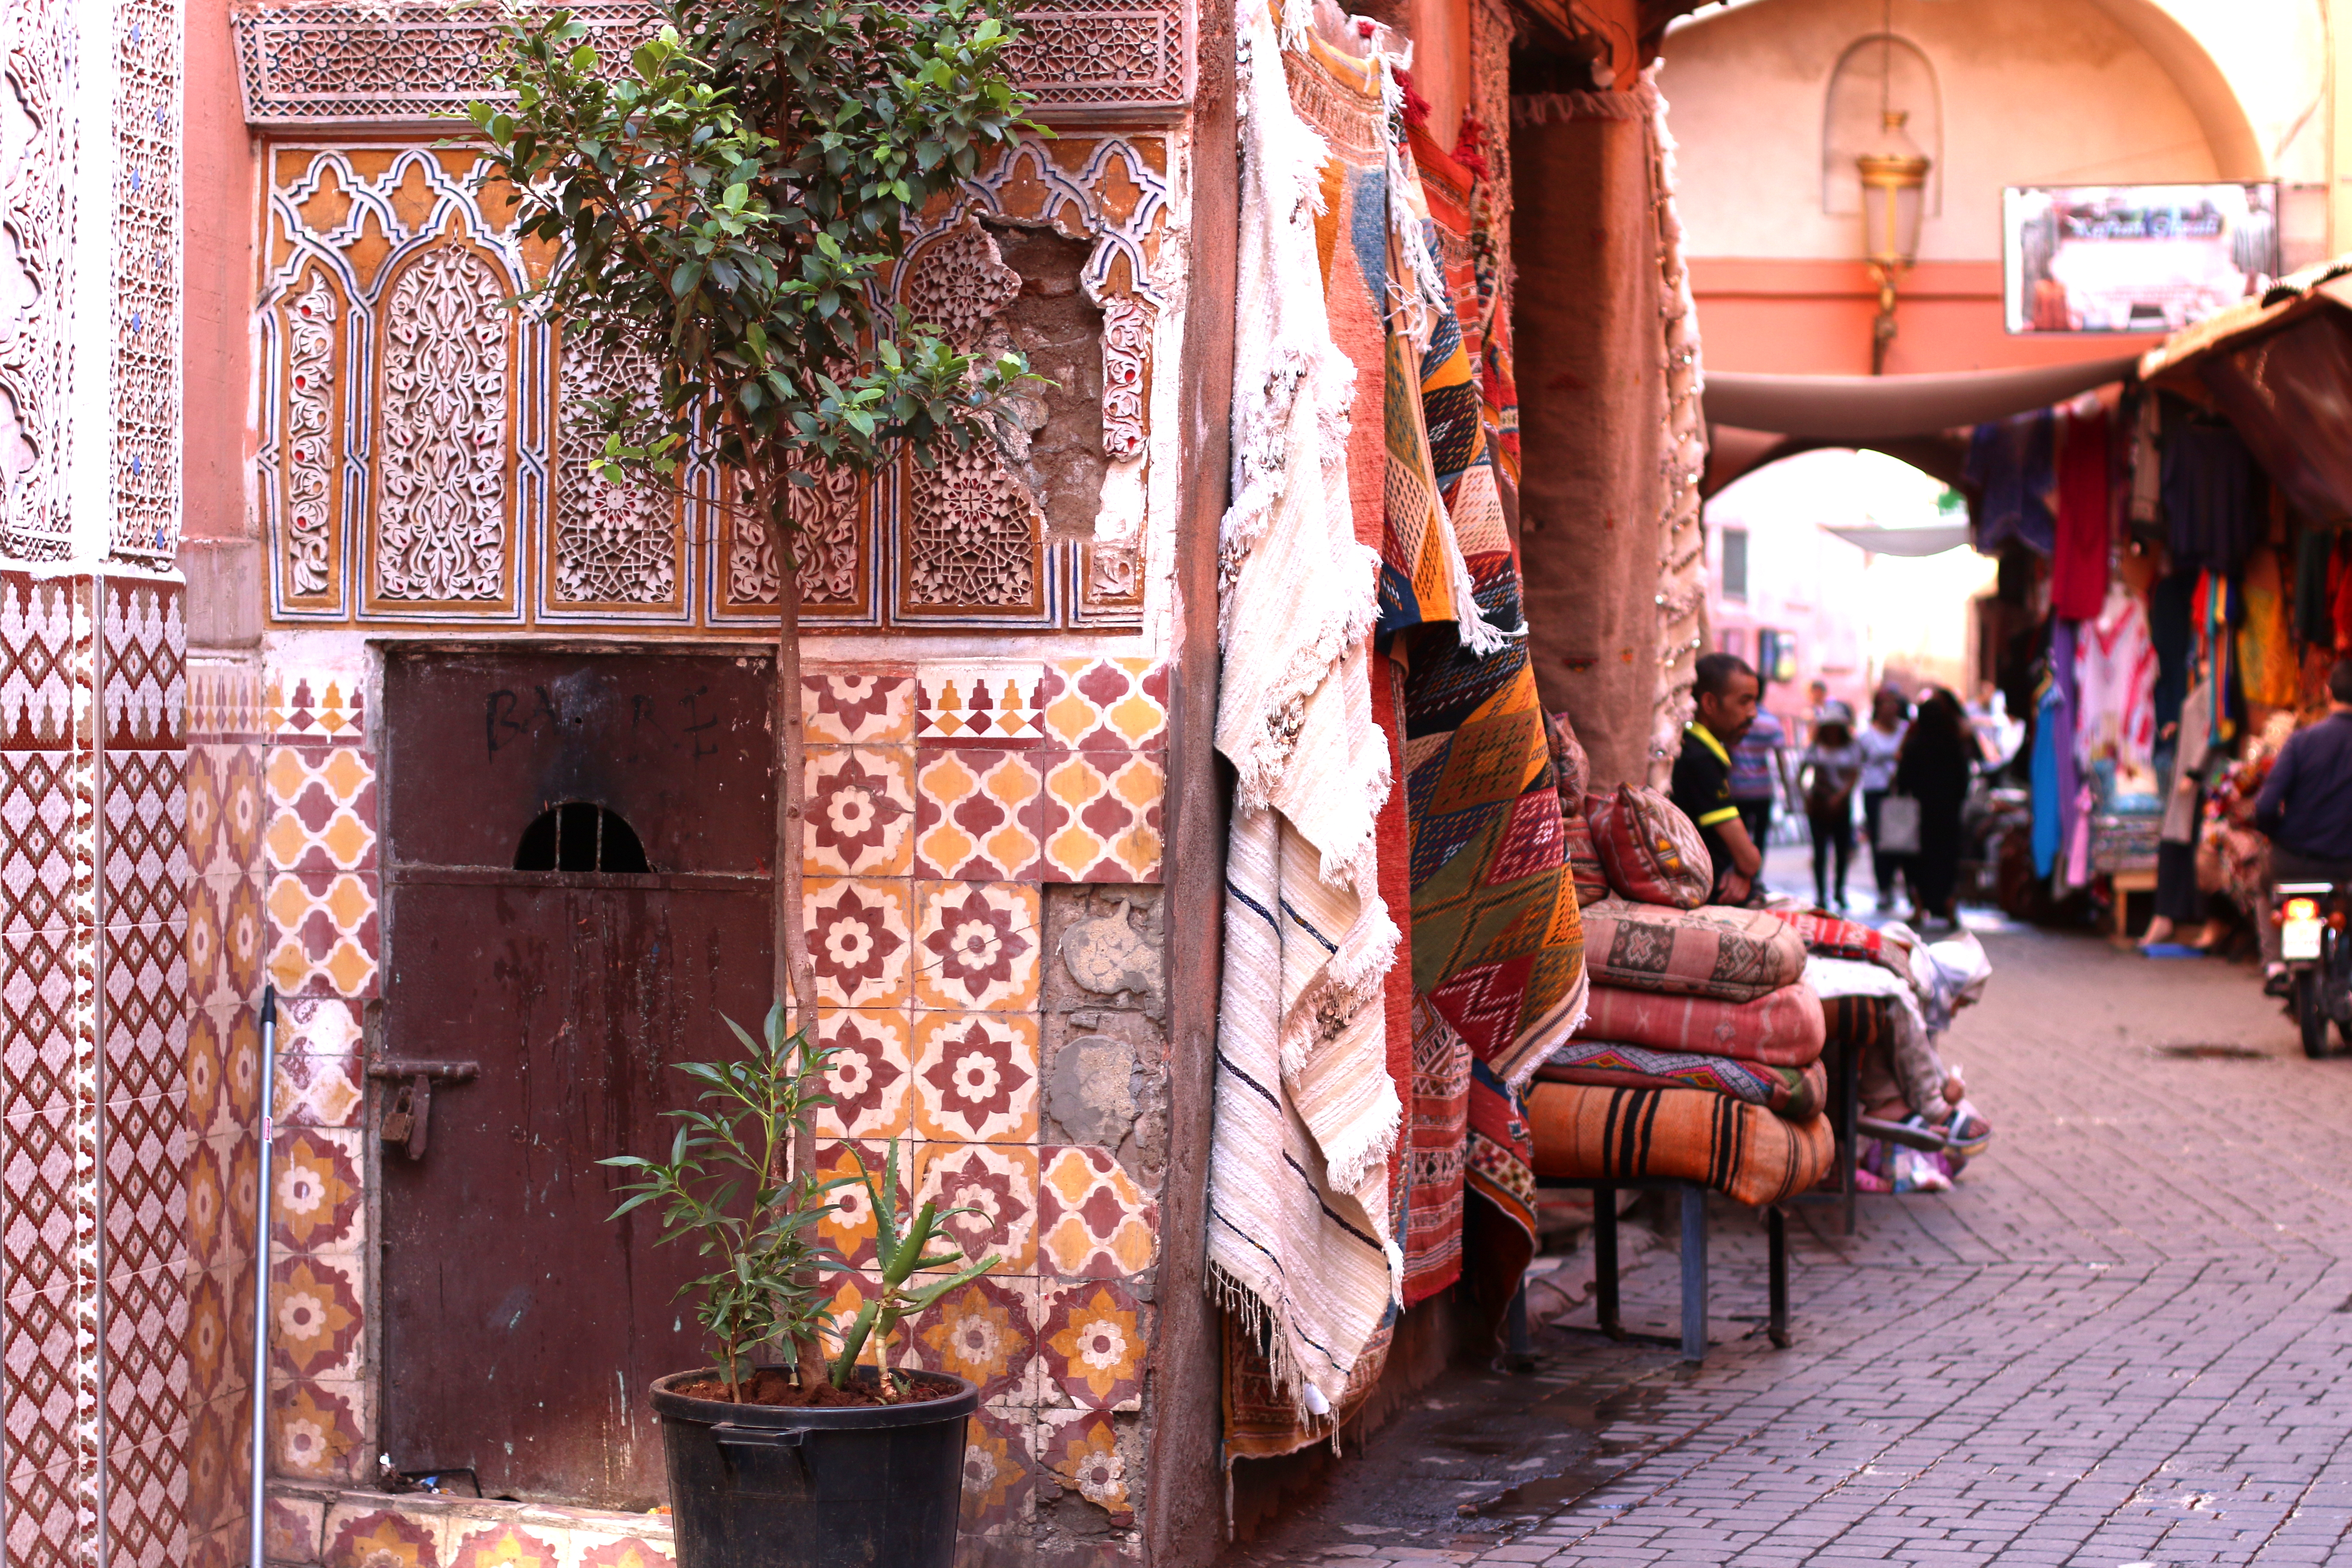 marrakech souks travel guide shopping markets marrakesch reiseblog